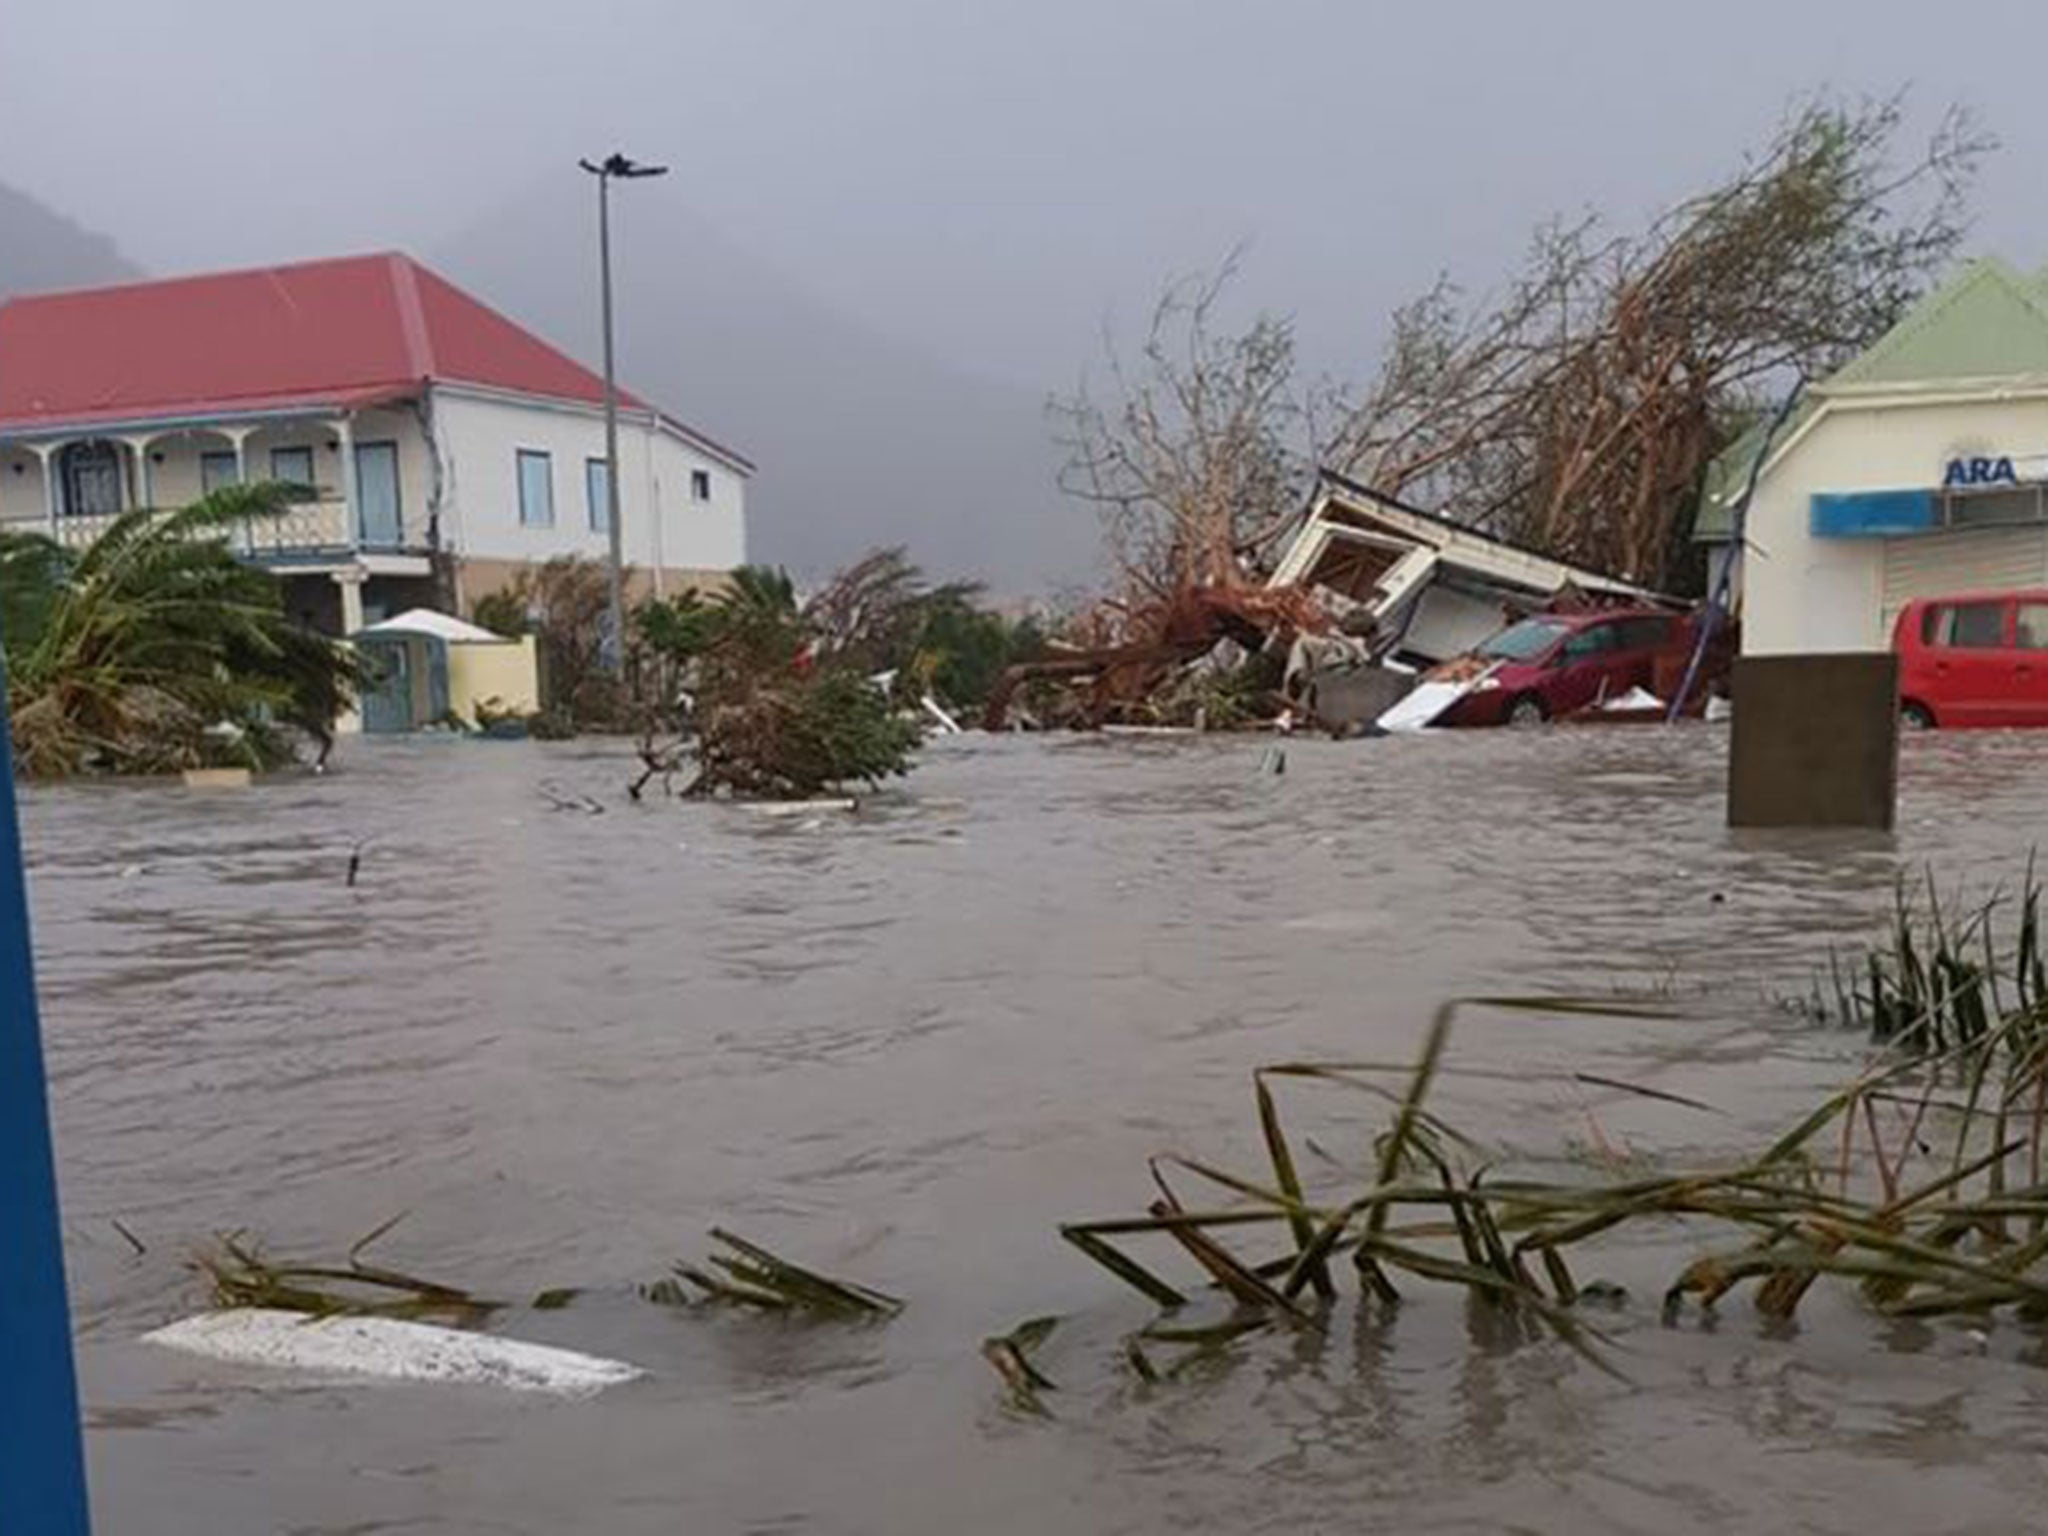 Antigua - latest news, breaking stories and comment - The